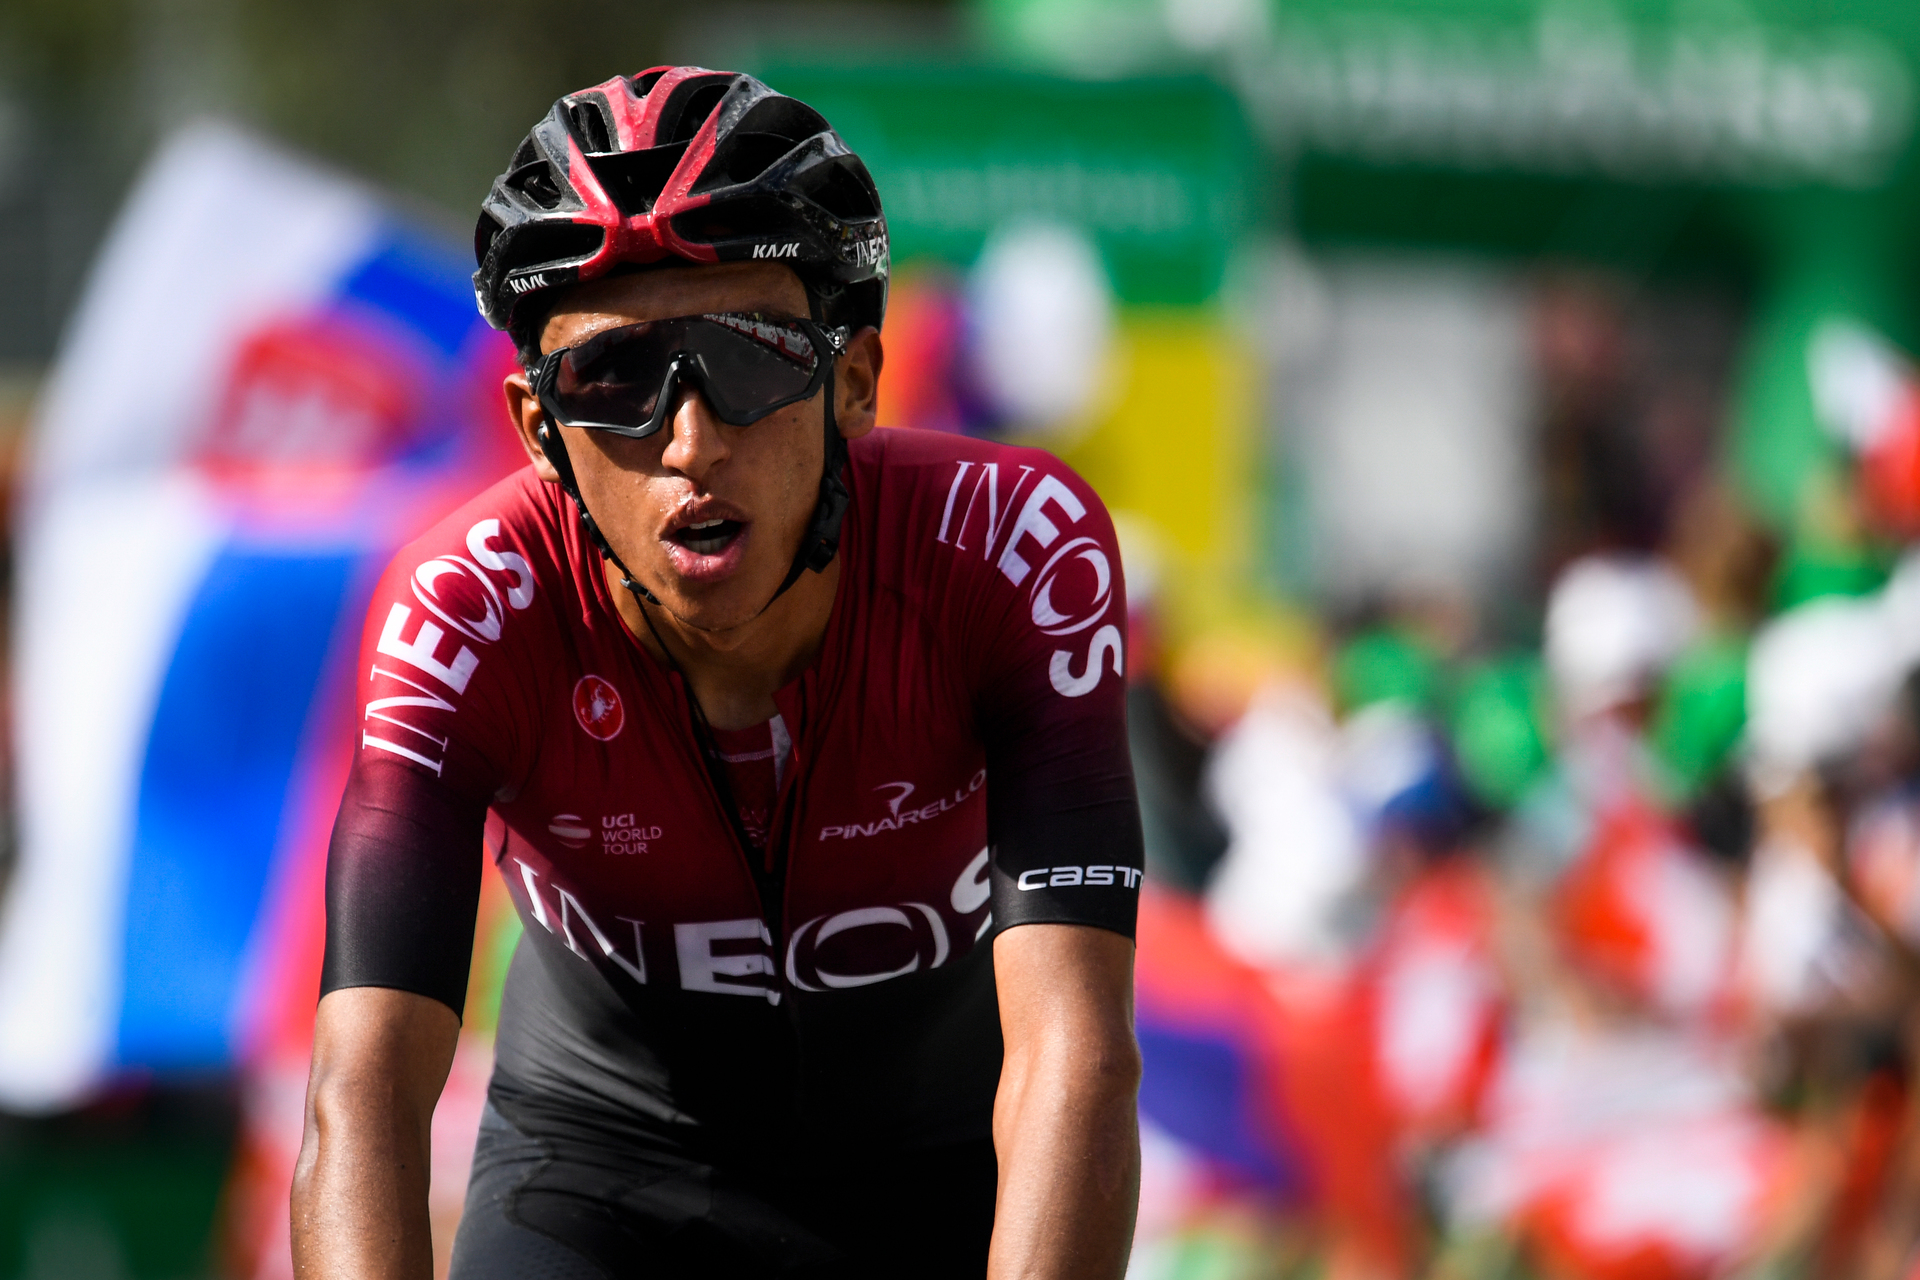 Cycling: New generation ready to deliver at Tour de France